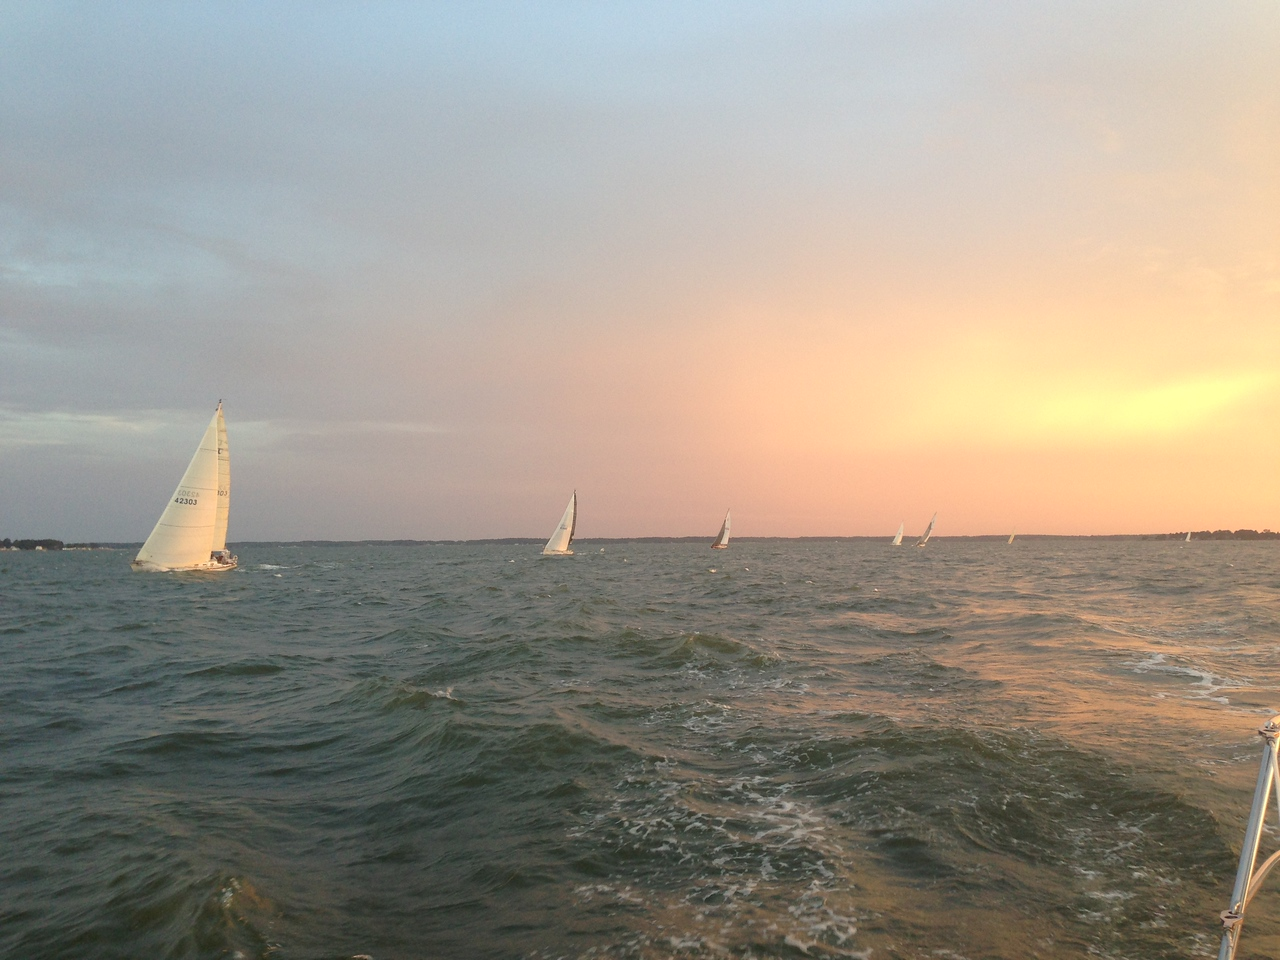 6/22 FBYC Moonlight Race - B/C fleets behind us on the layline to the first mark.